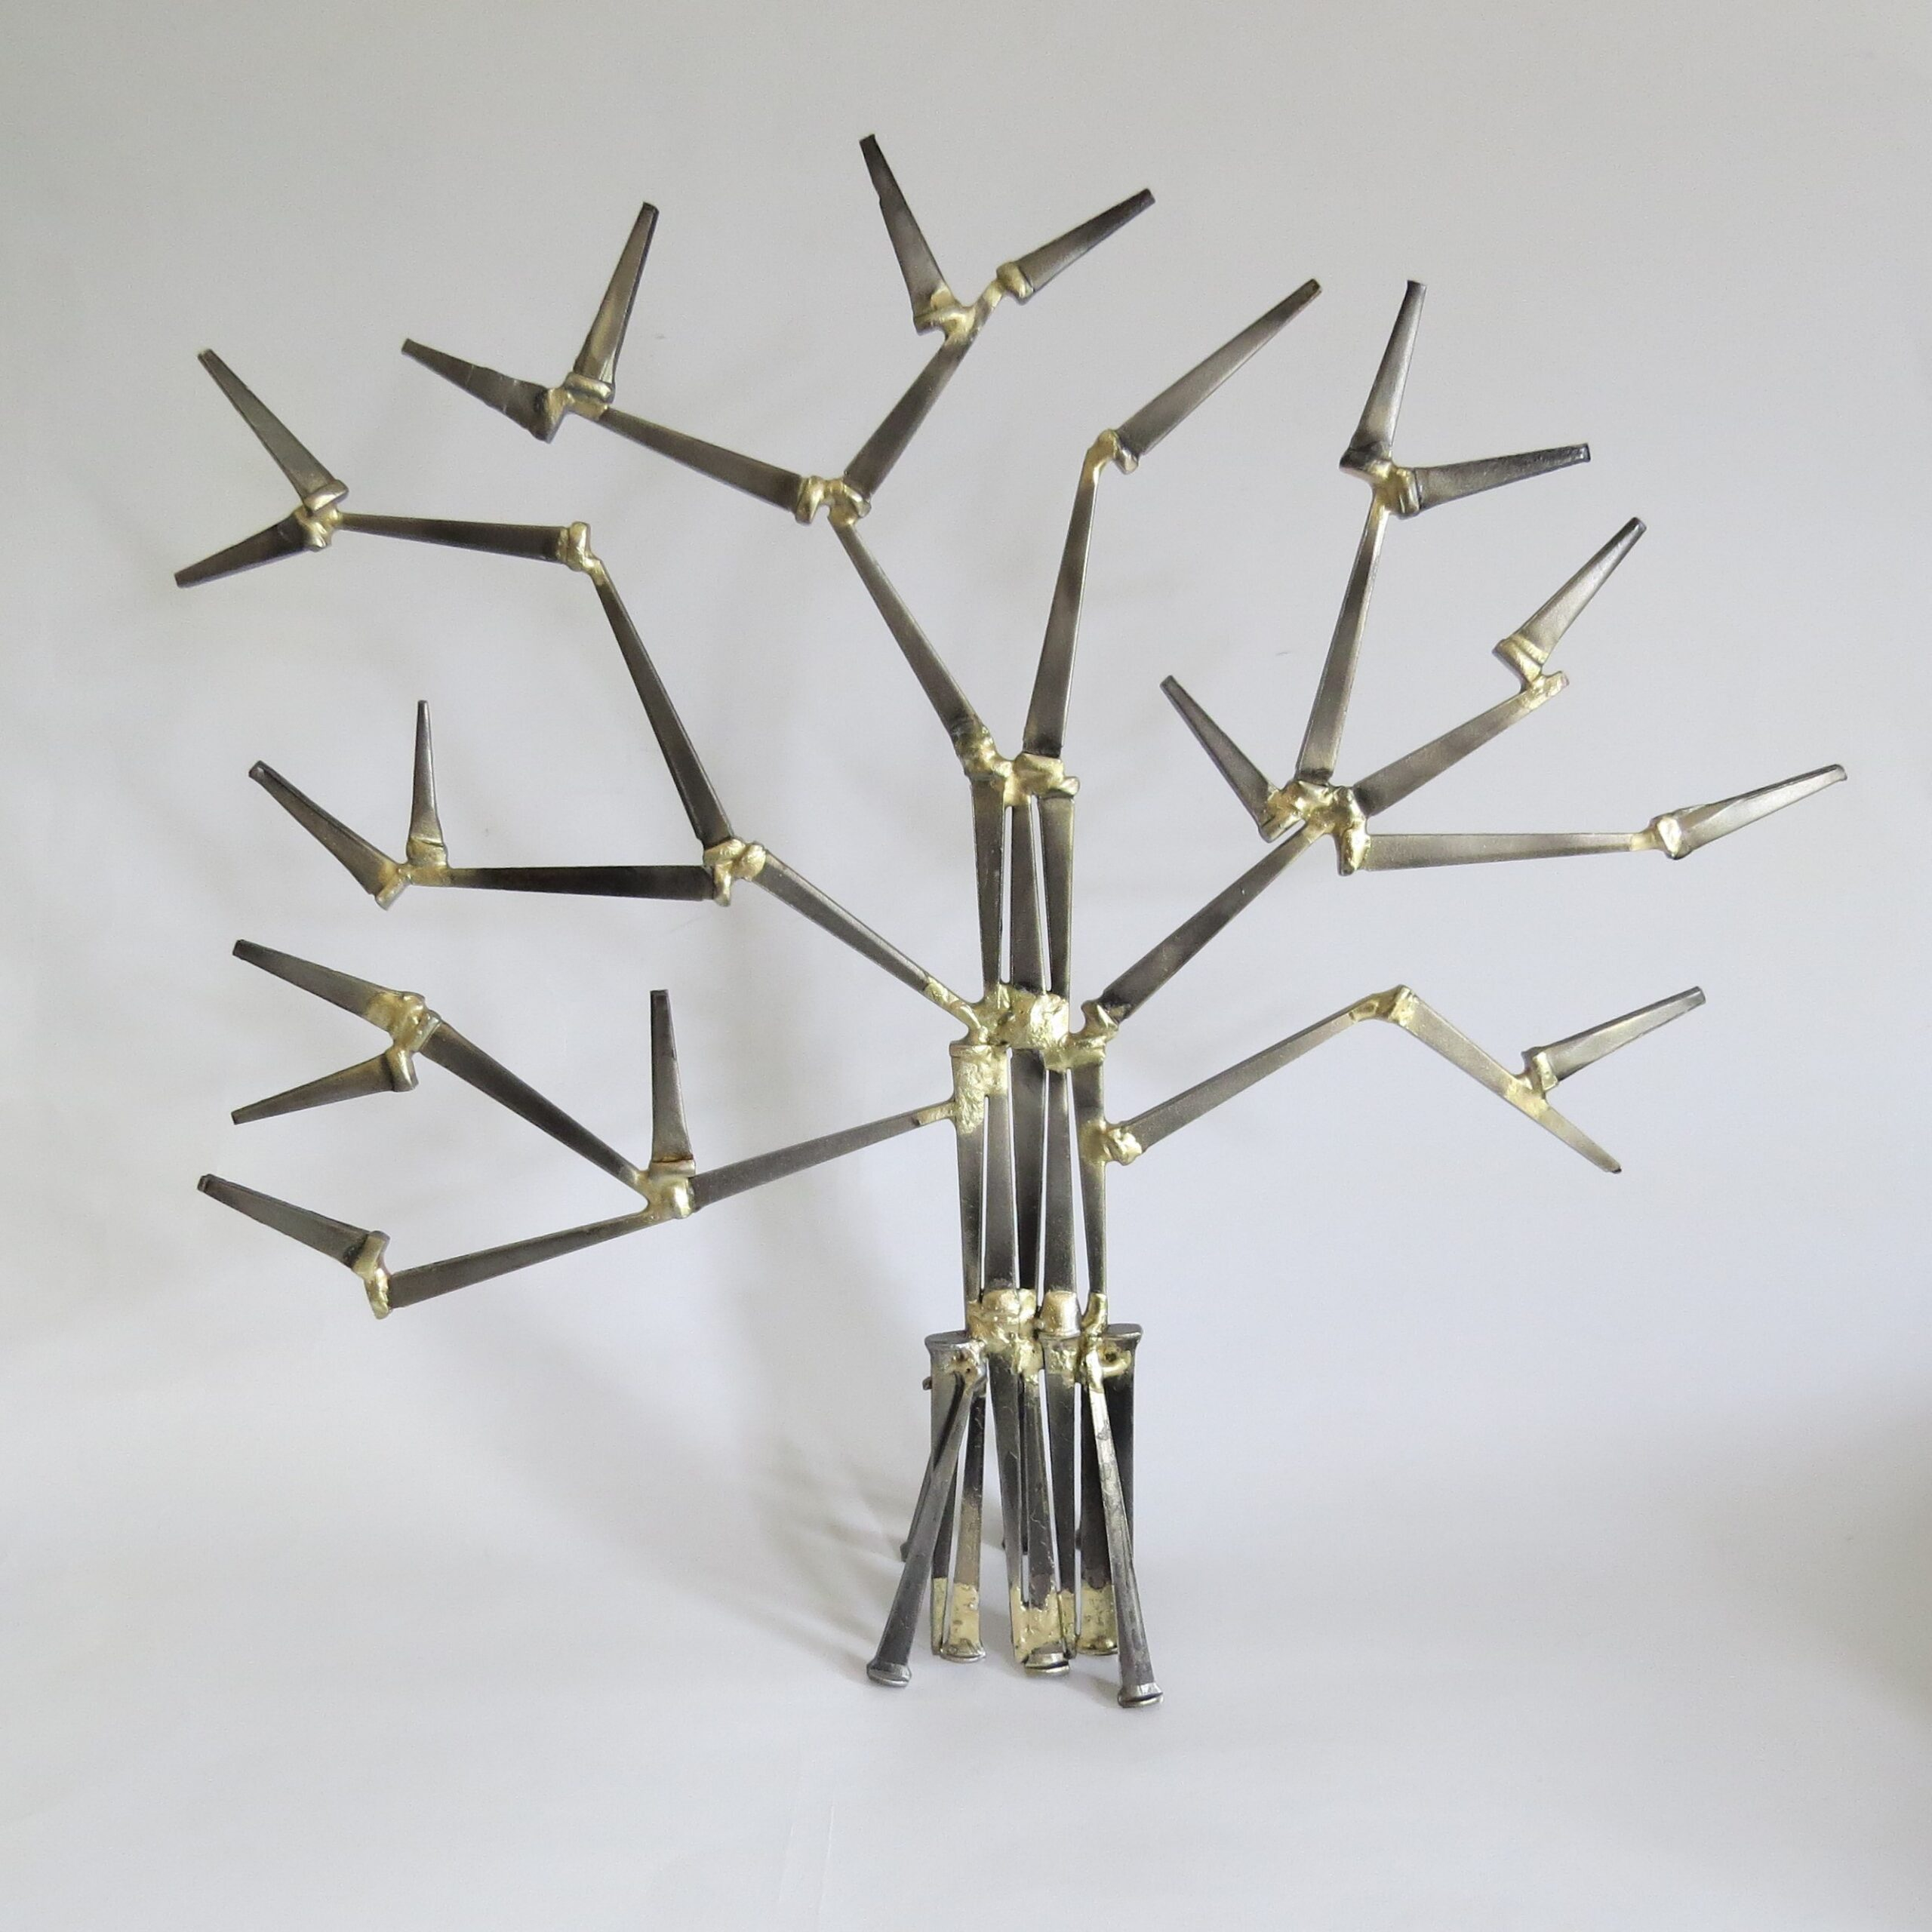 Hand brazed and steel creatively and custom designed.